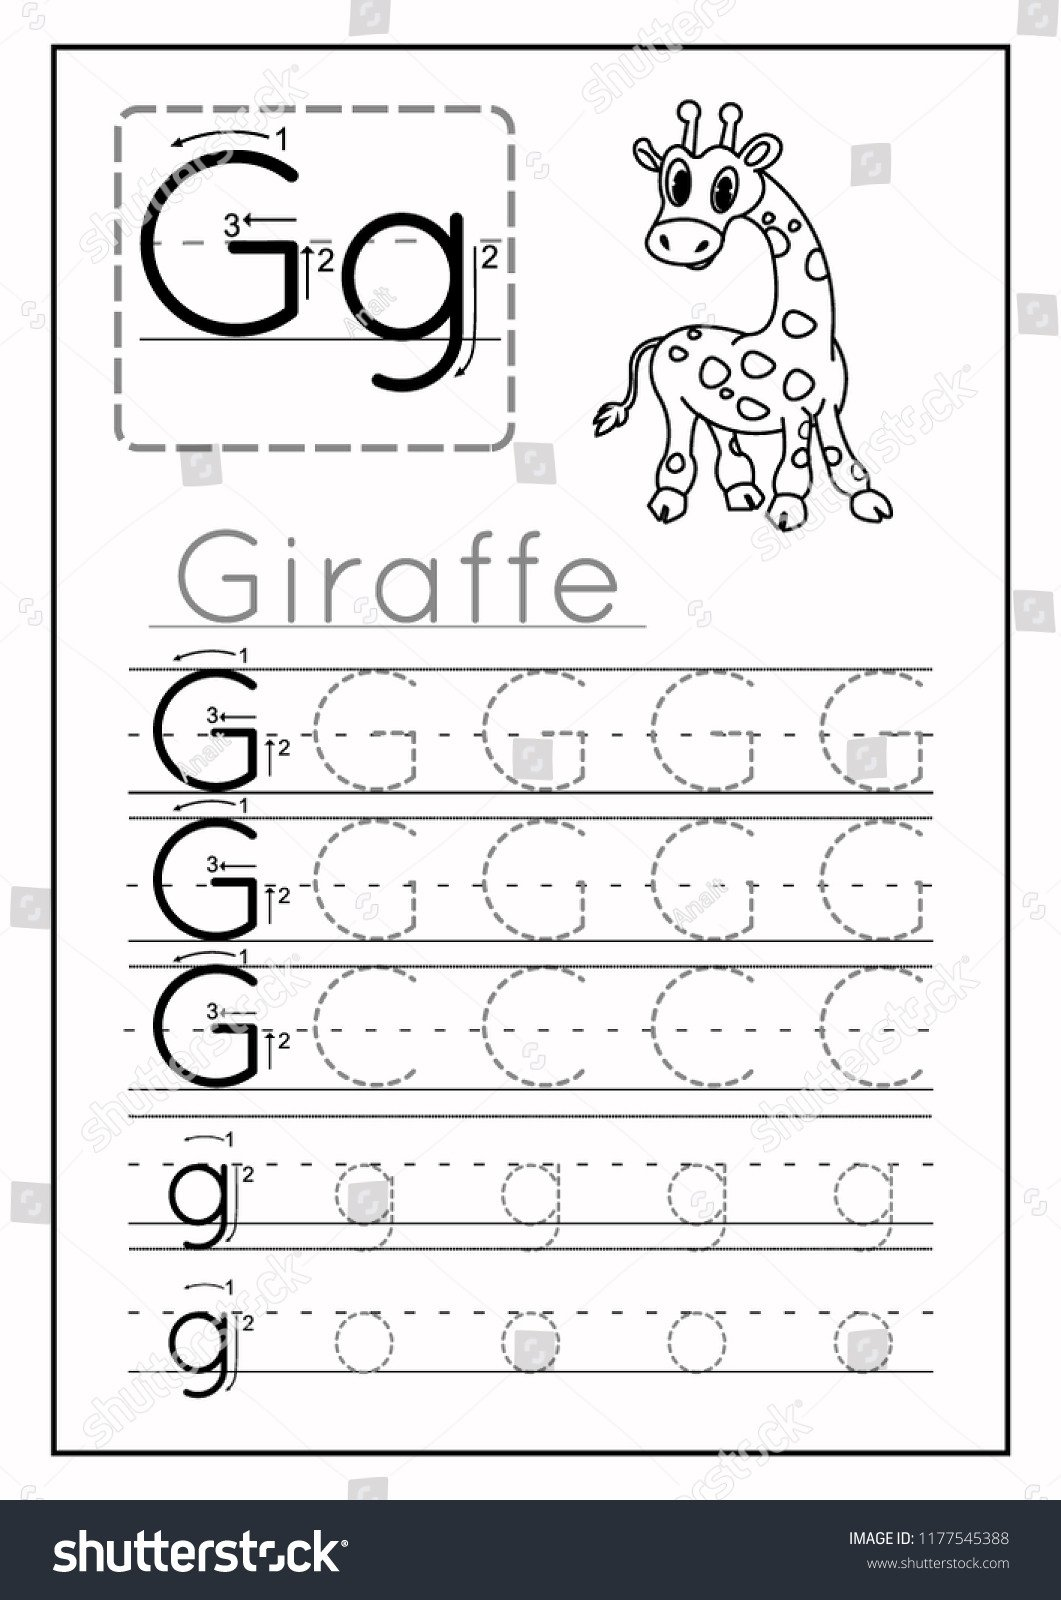 Preschool Letter G Worksheets Worksheet Holiday Printouts Pre Rhyming Words Addition